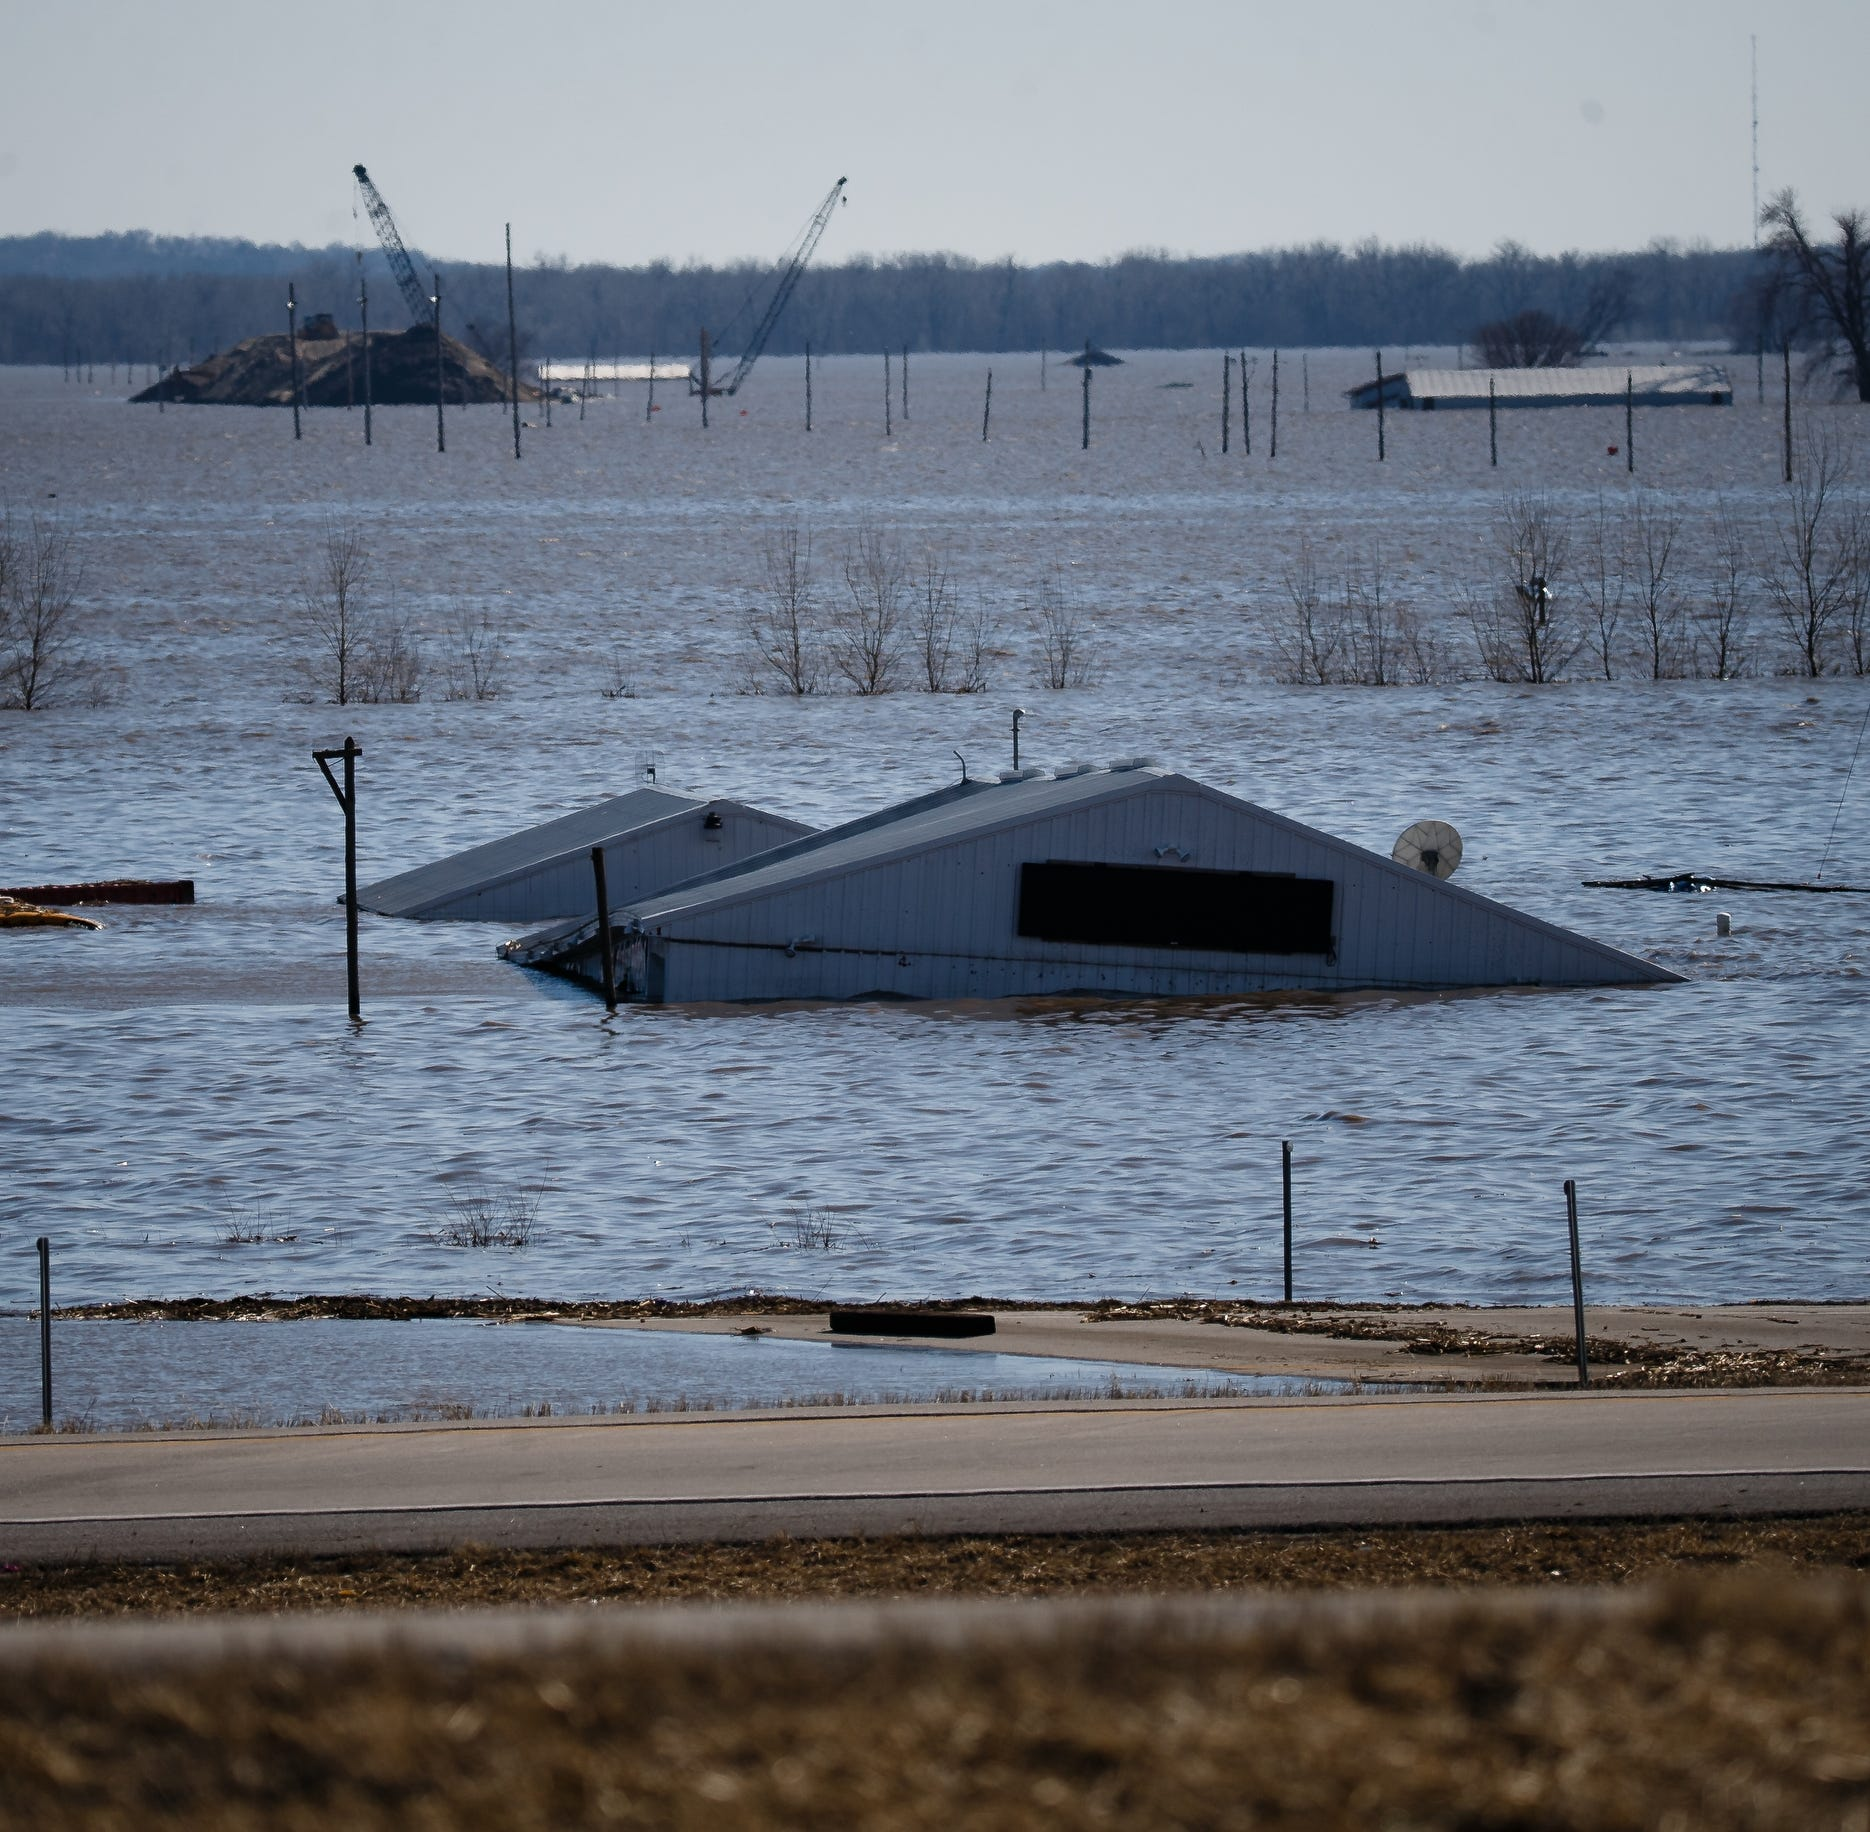 Iowa flooding: Damage from floodwaters reaches $1.6B, Gov. Kim Reynolds estimates